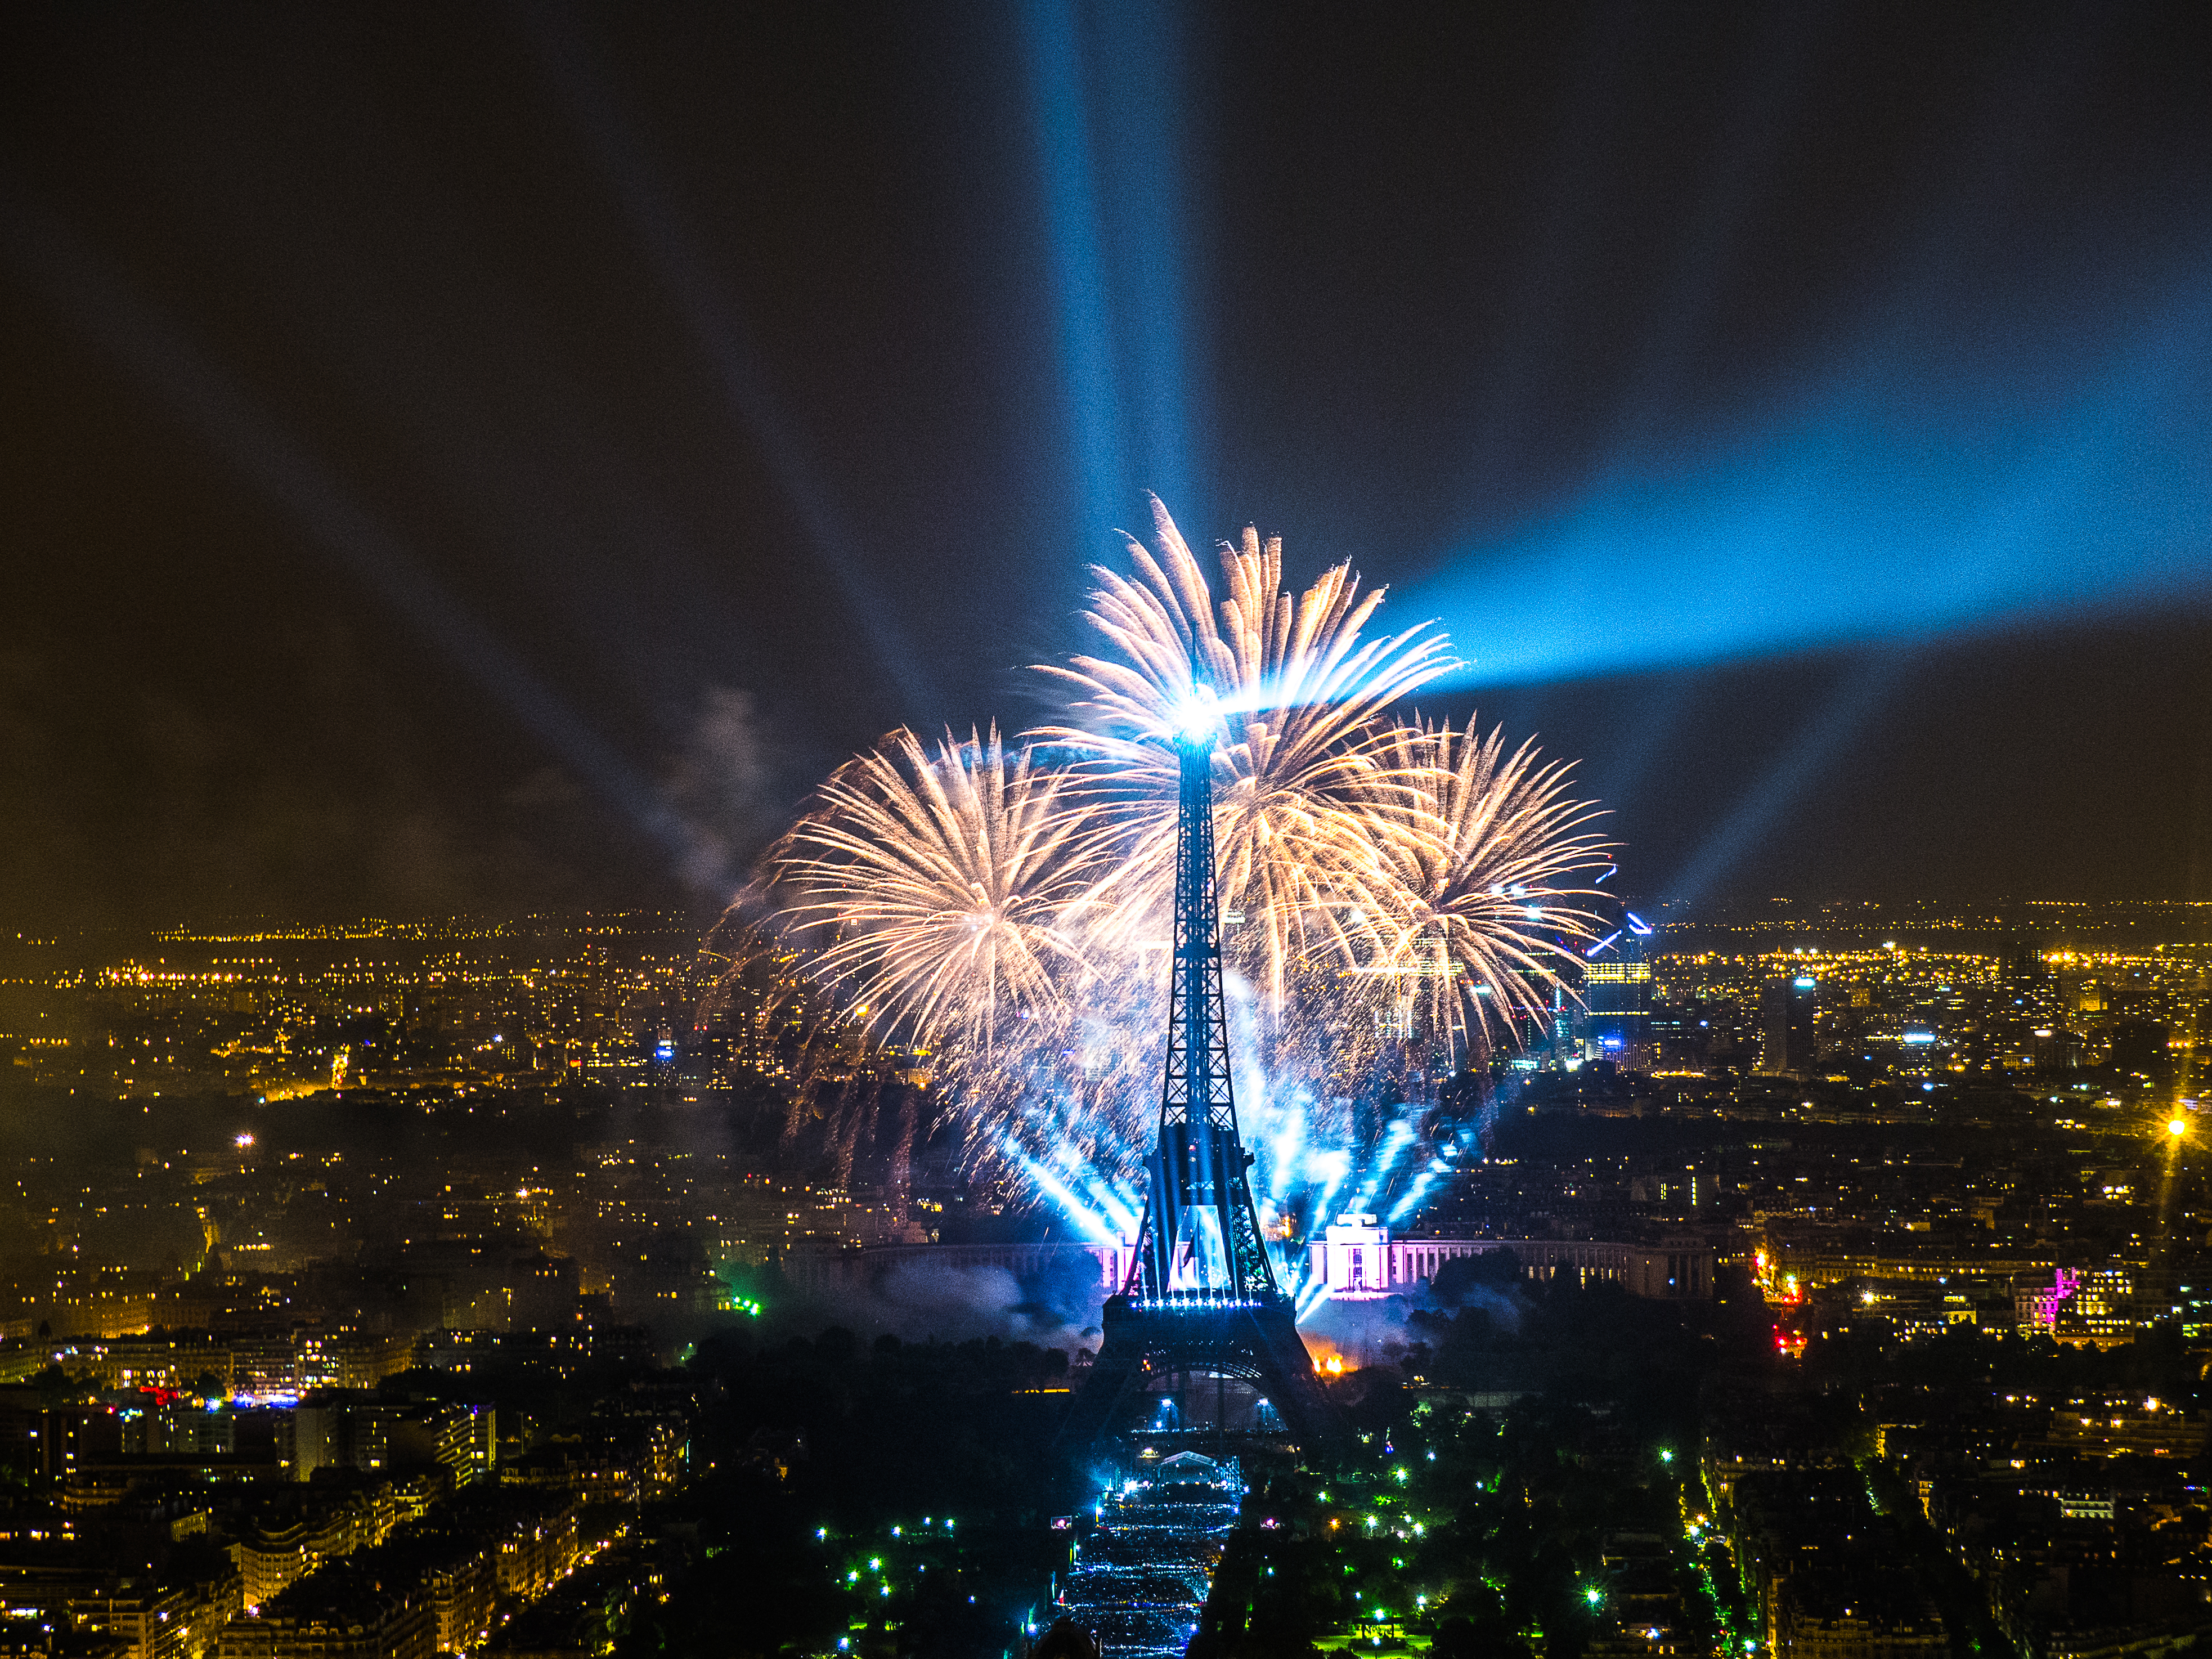 Eiffel Tower Paris At Night With Fireworks